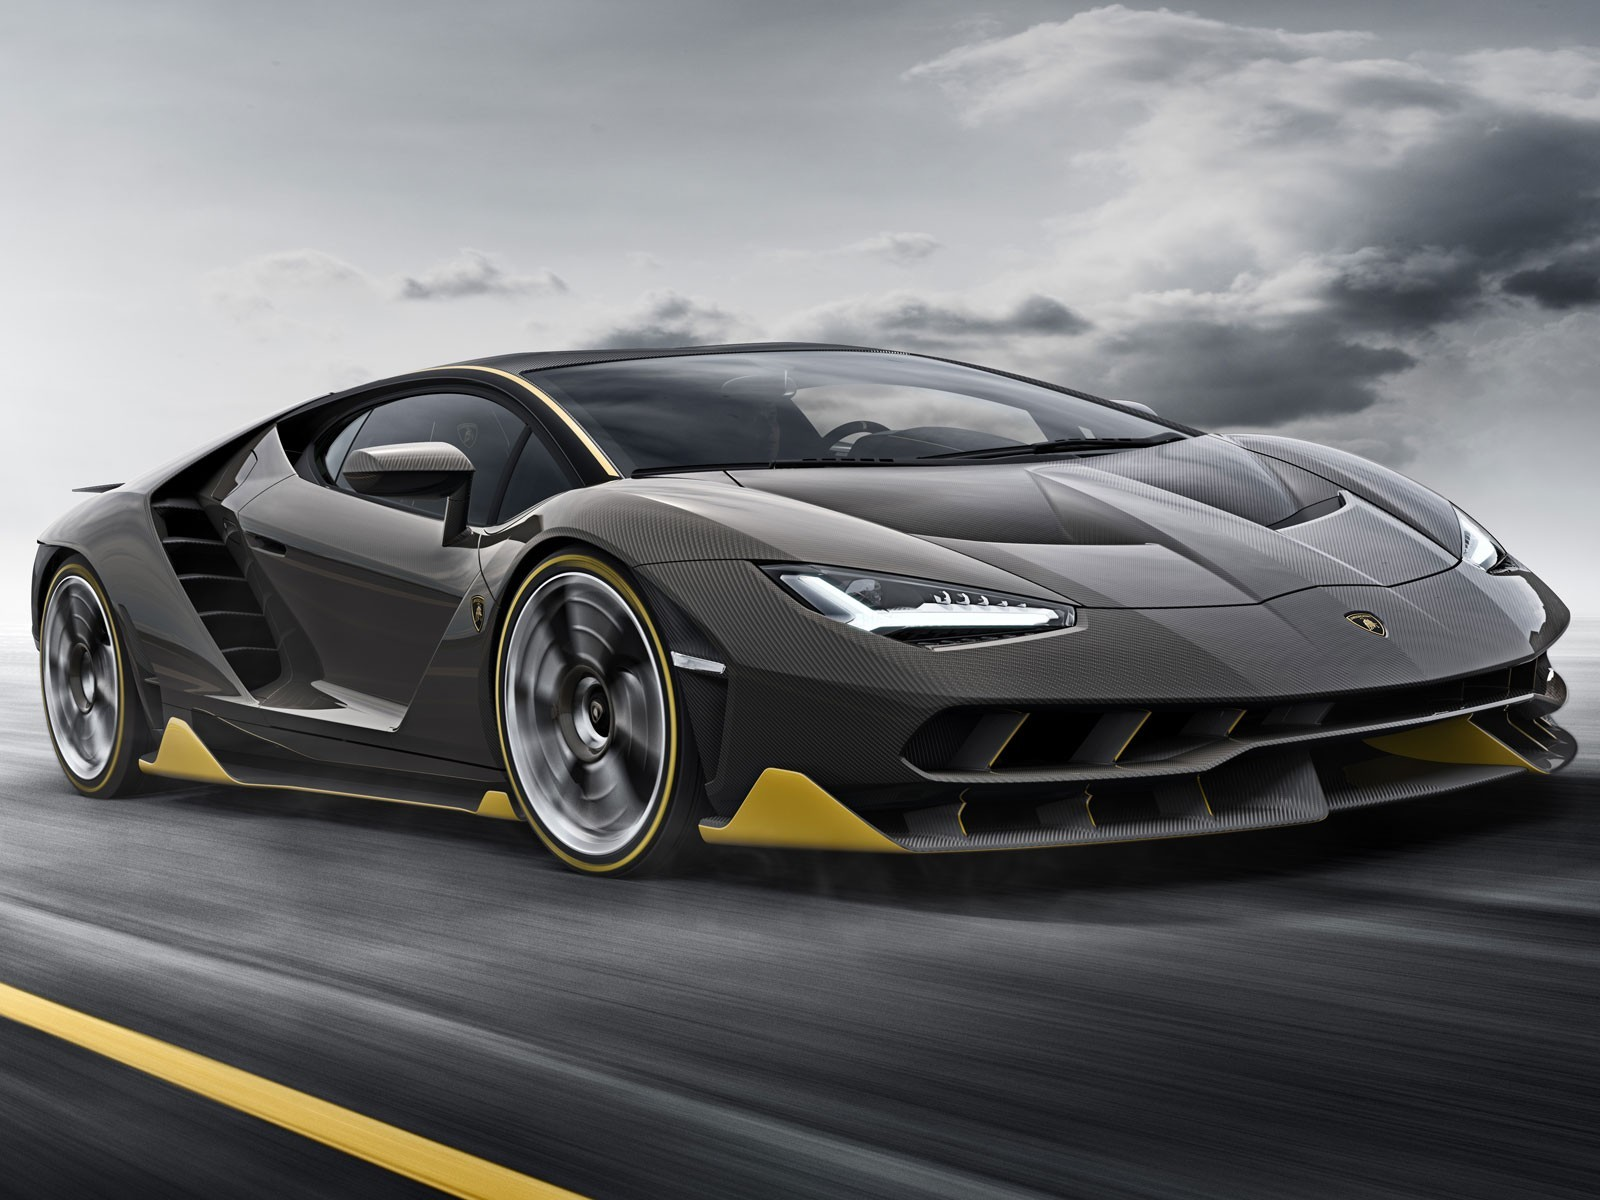 foto der neue lamborghini centenario vom artikel. Black Bedroom Furniture Sets. Home Design Ideas